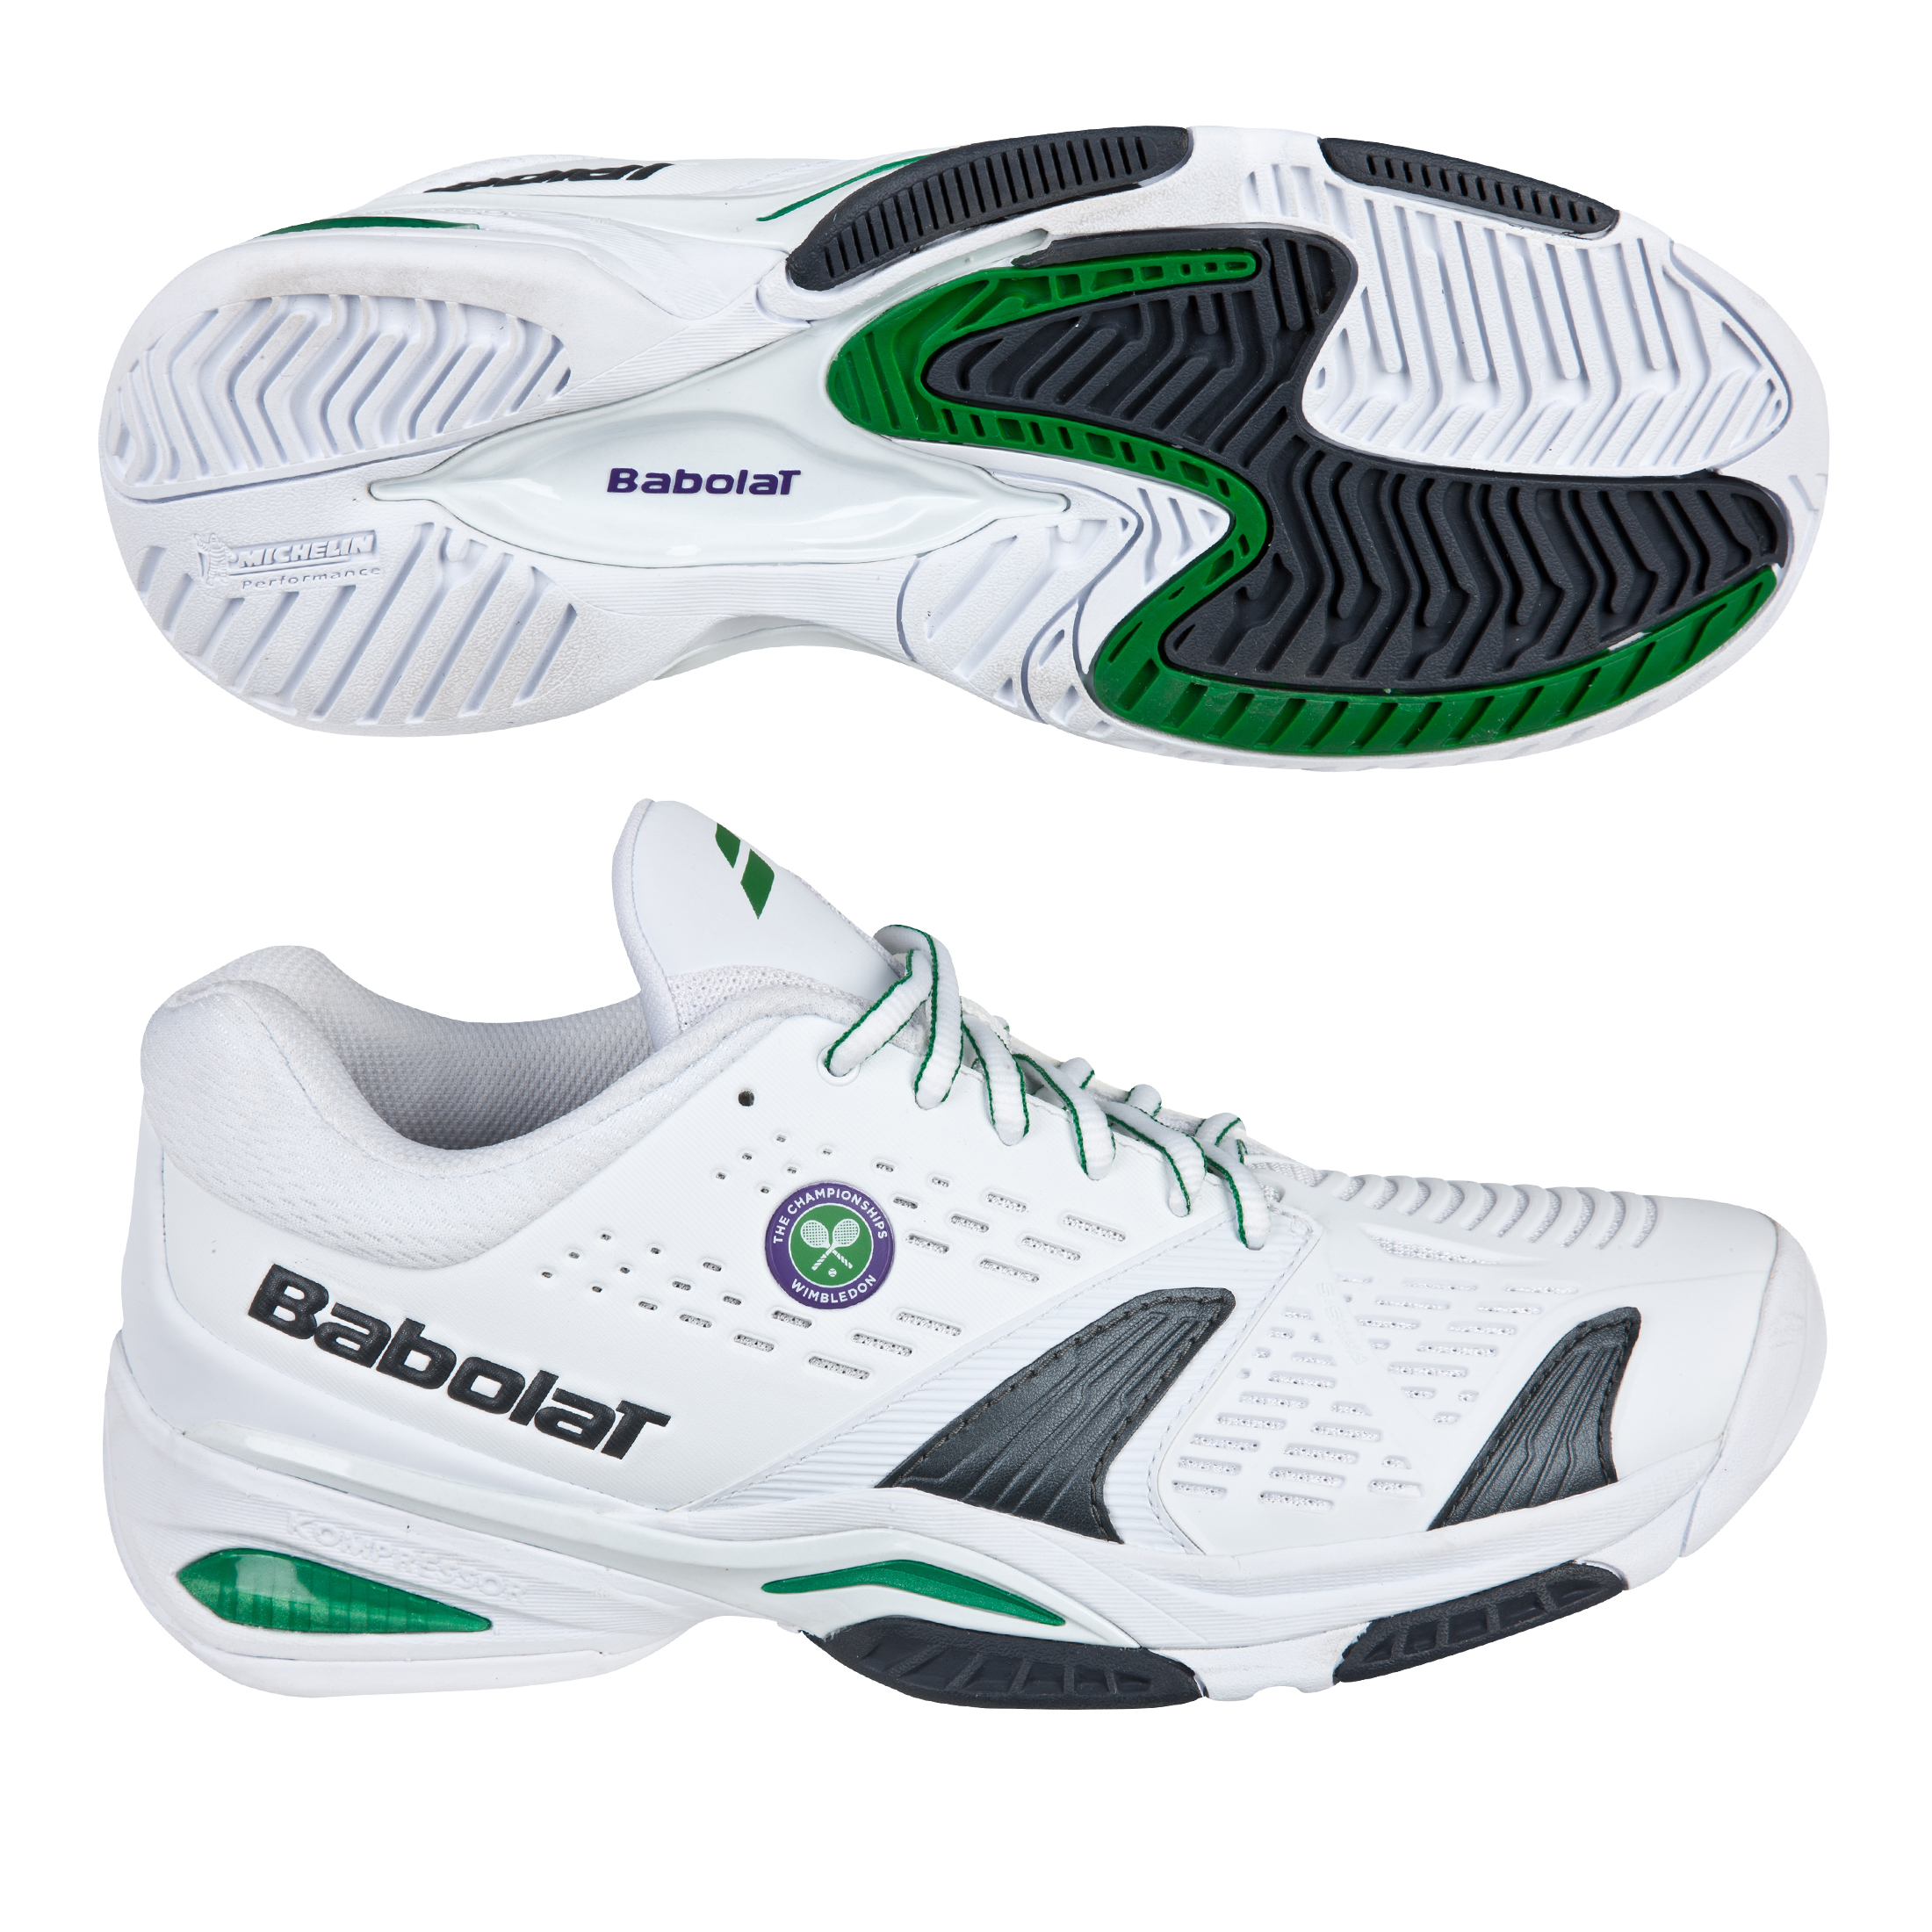 Wimbledon SFX All Court Wimbledon Tennis Shoe